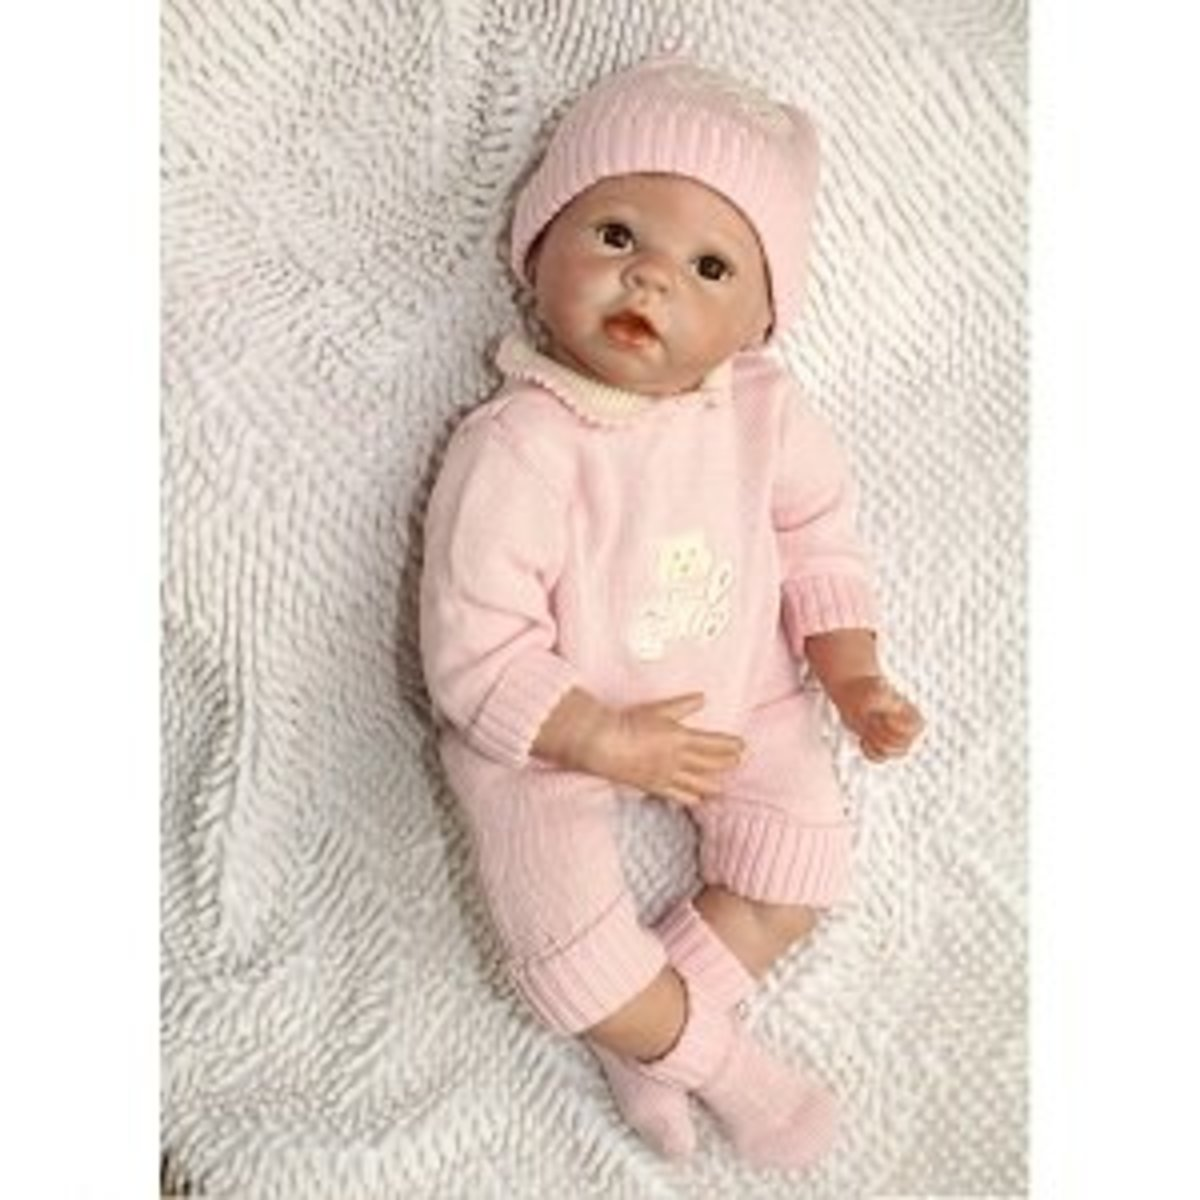 One of the realistic breathing baby dolls